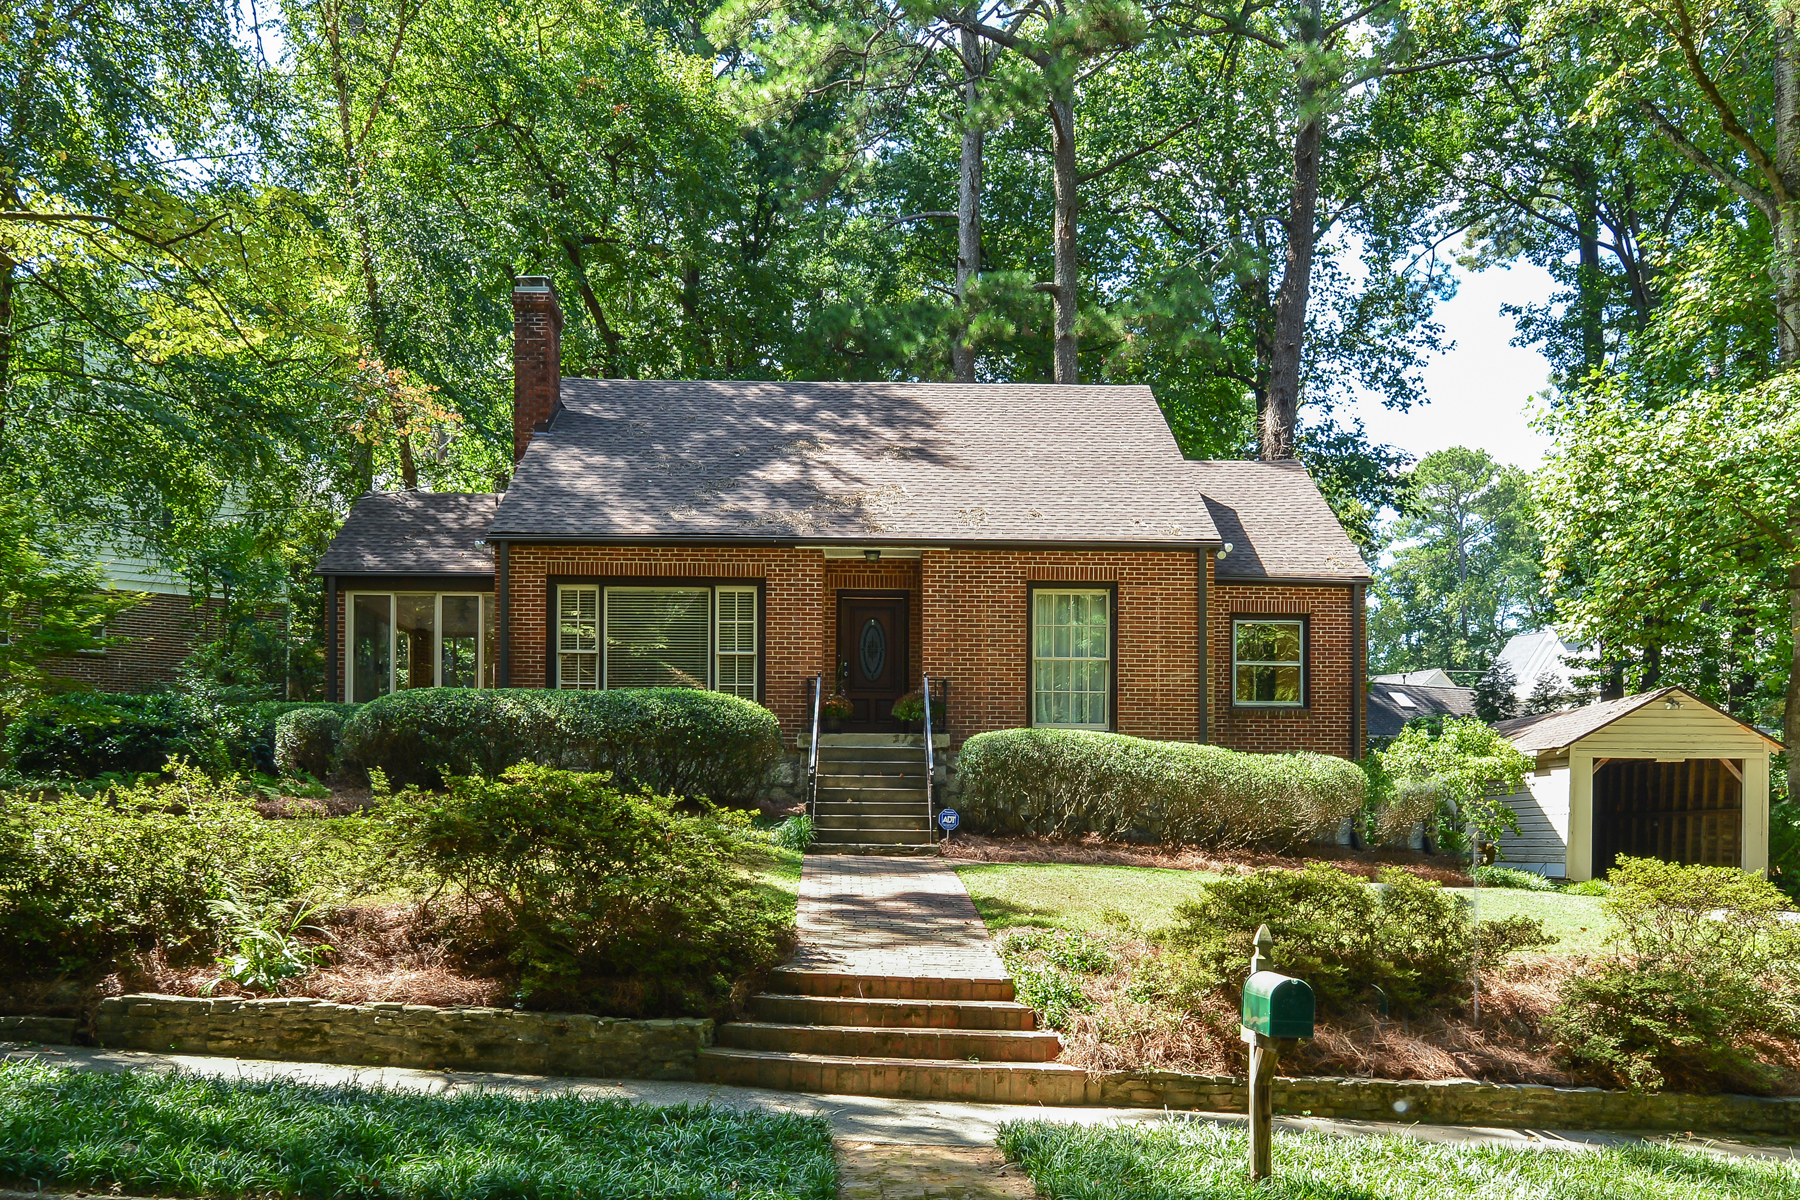 Single Family Home for Active at Charming Morningside Brick Home On The Park 1346 Beech Valley Road NE Atlanta, Georgia 30306 United States